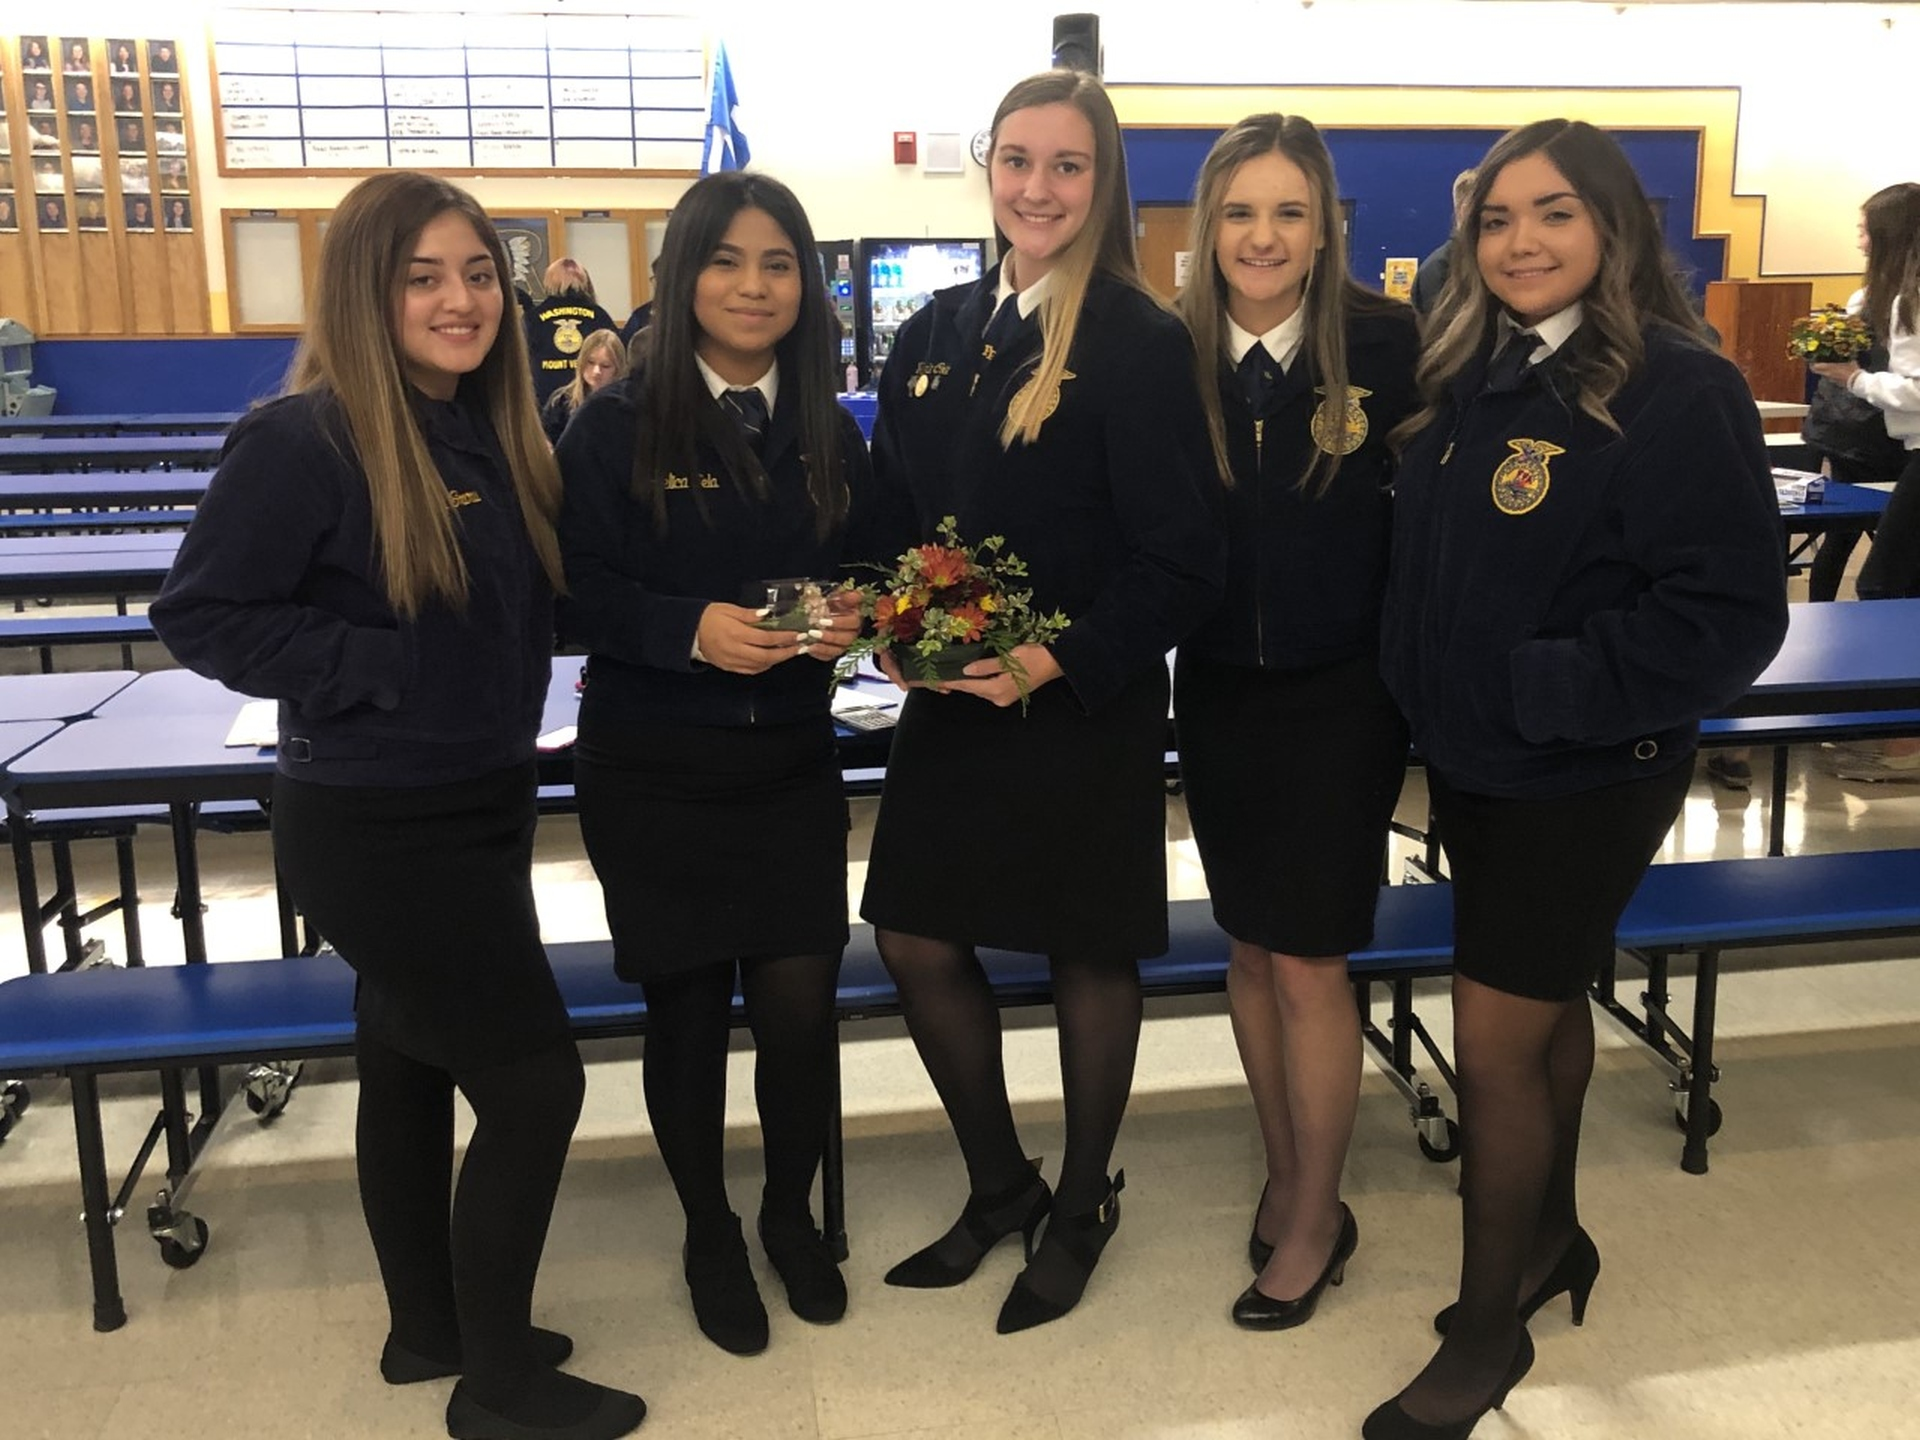 Congratulations to our Floriculture Team who placed 8th at the Rochester event this past weekend